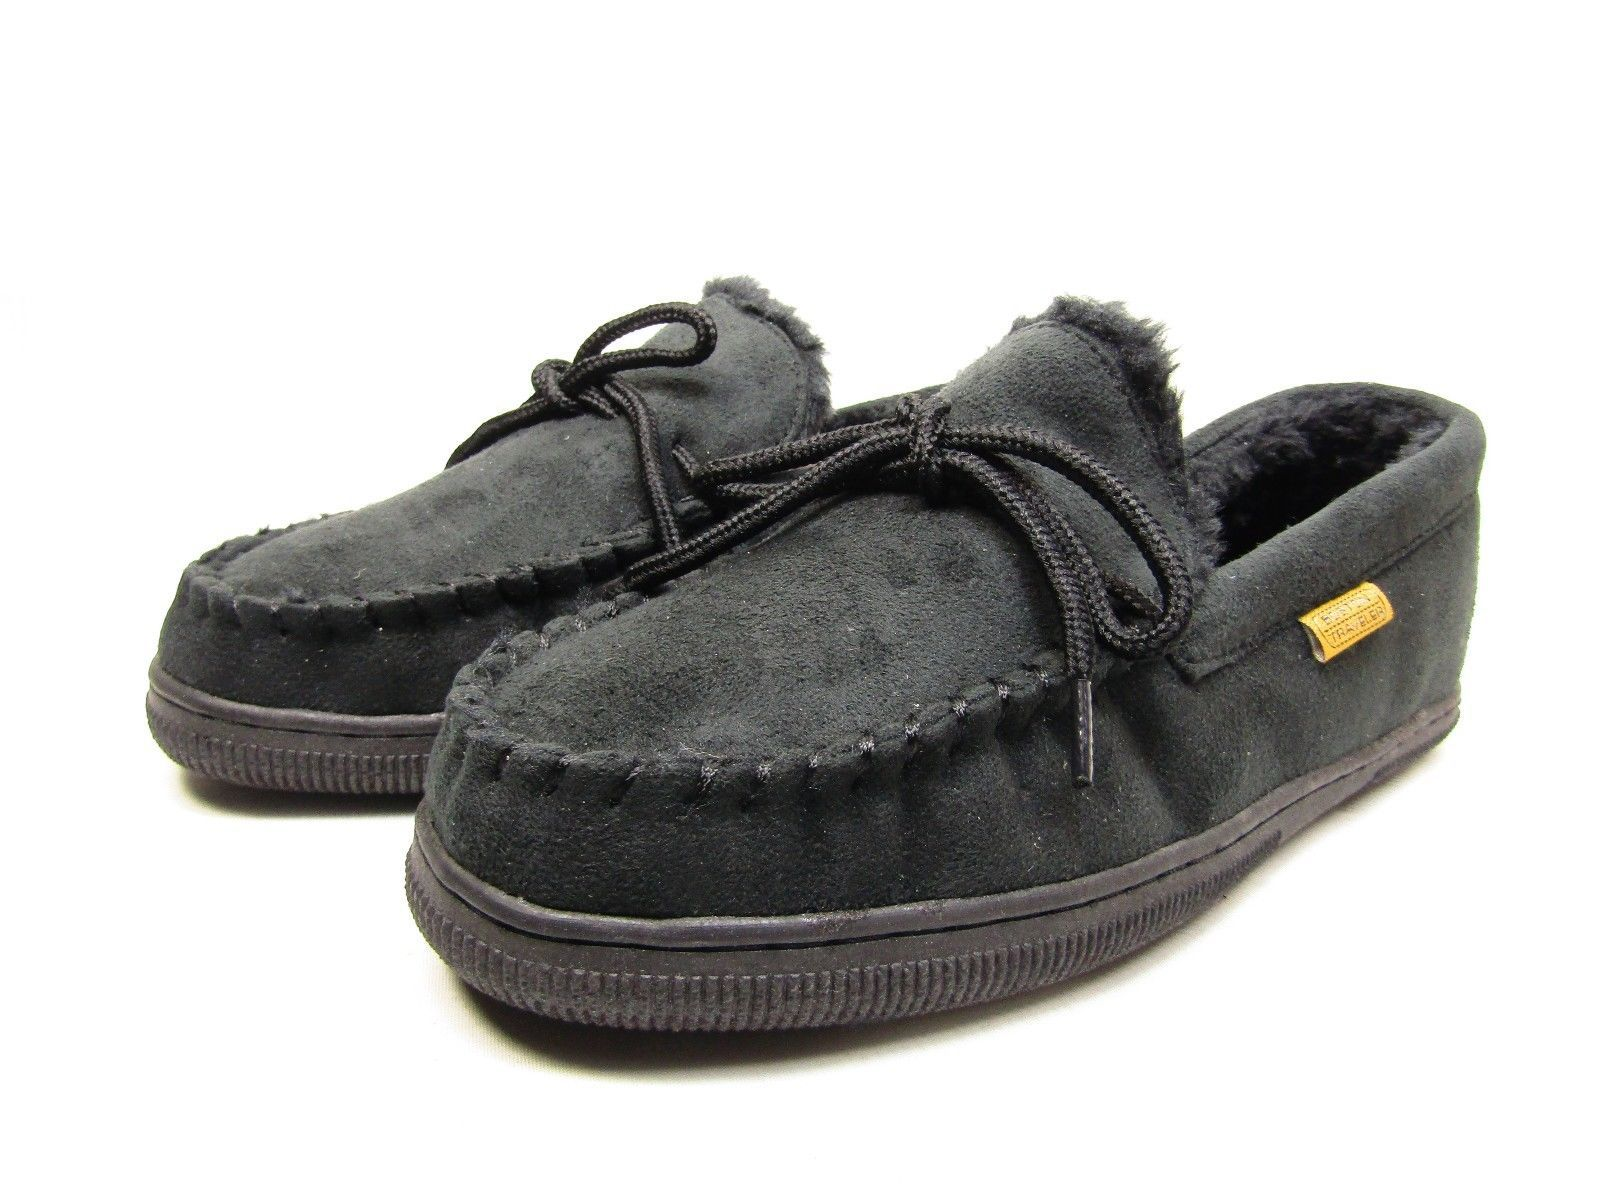 Primary image for Boston Traveler  Moccasin Slippers 212M Black Size 11